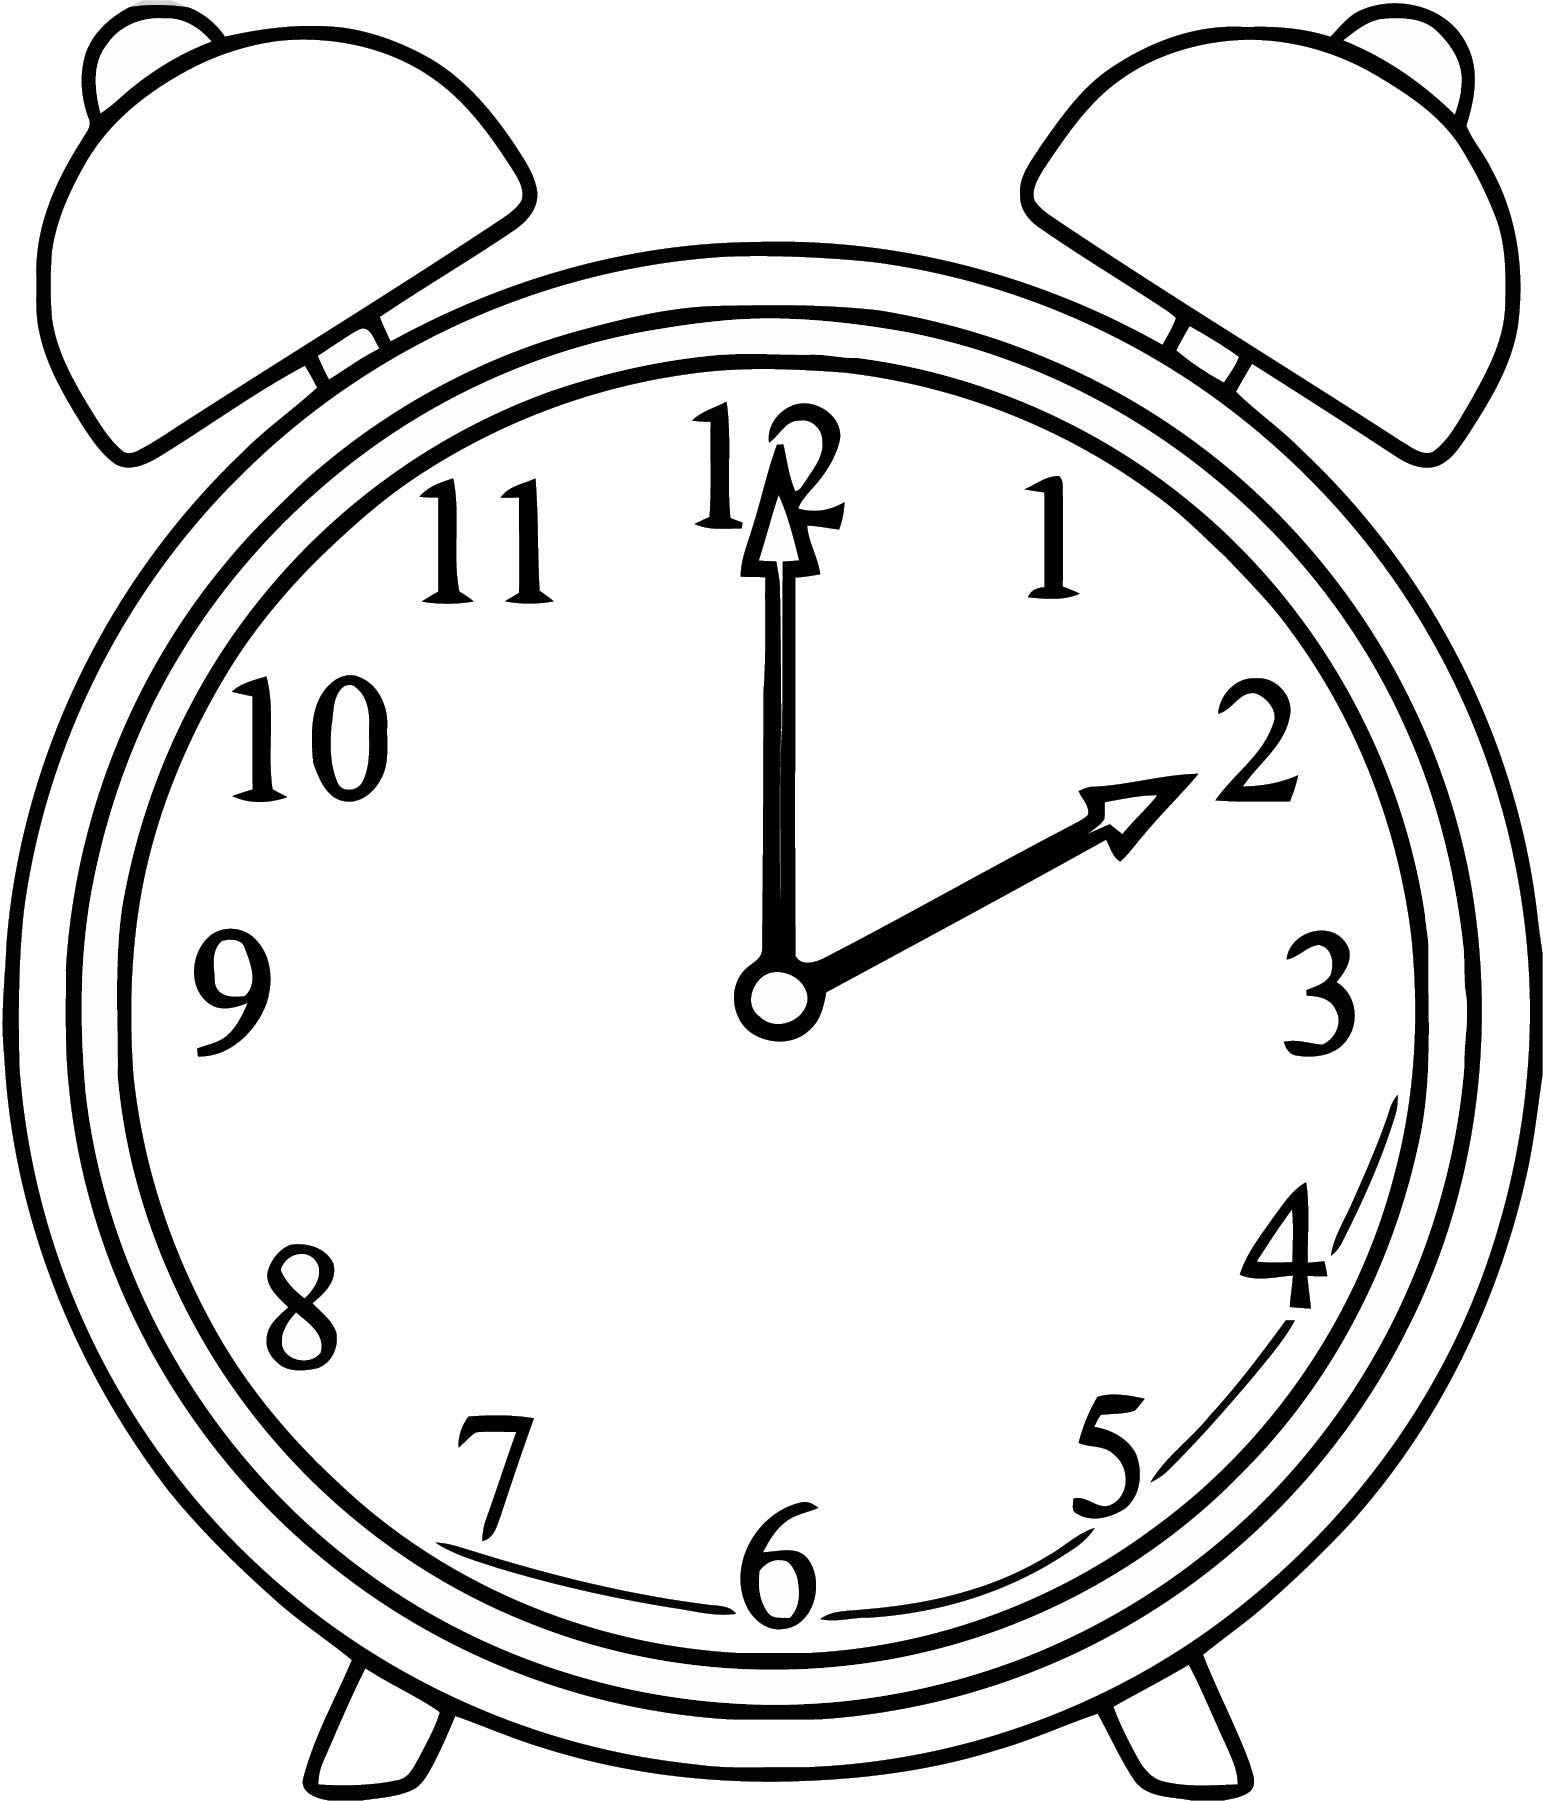 Clock Clip Art Alarm Clo Free Printable Ck Cartoonized Free Printable Coloring Page